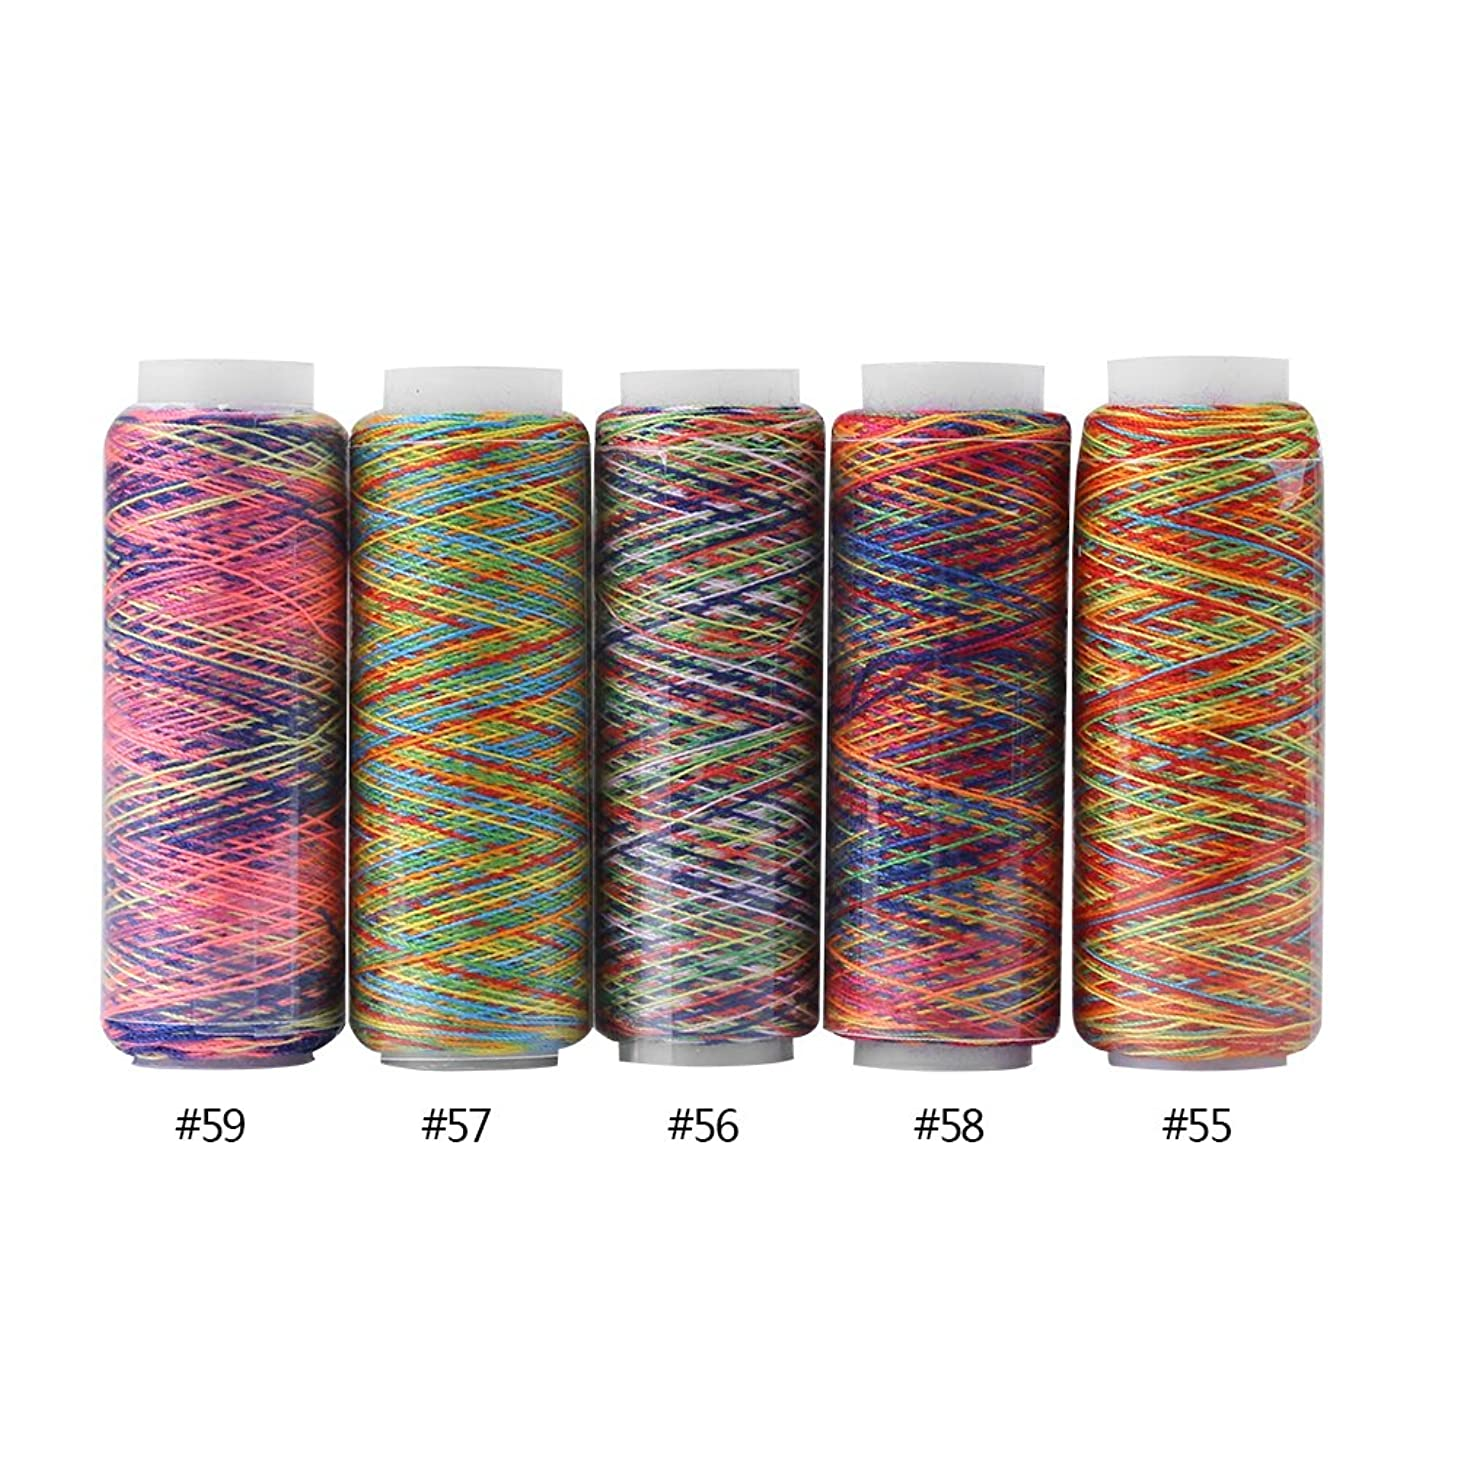 Multicolor Thread Set, 5 Spools of Polyester Thread Yard, Variegated Polyester Manual Machine Embroidery Sewing Thread 110m/120 Yard